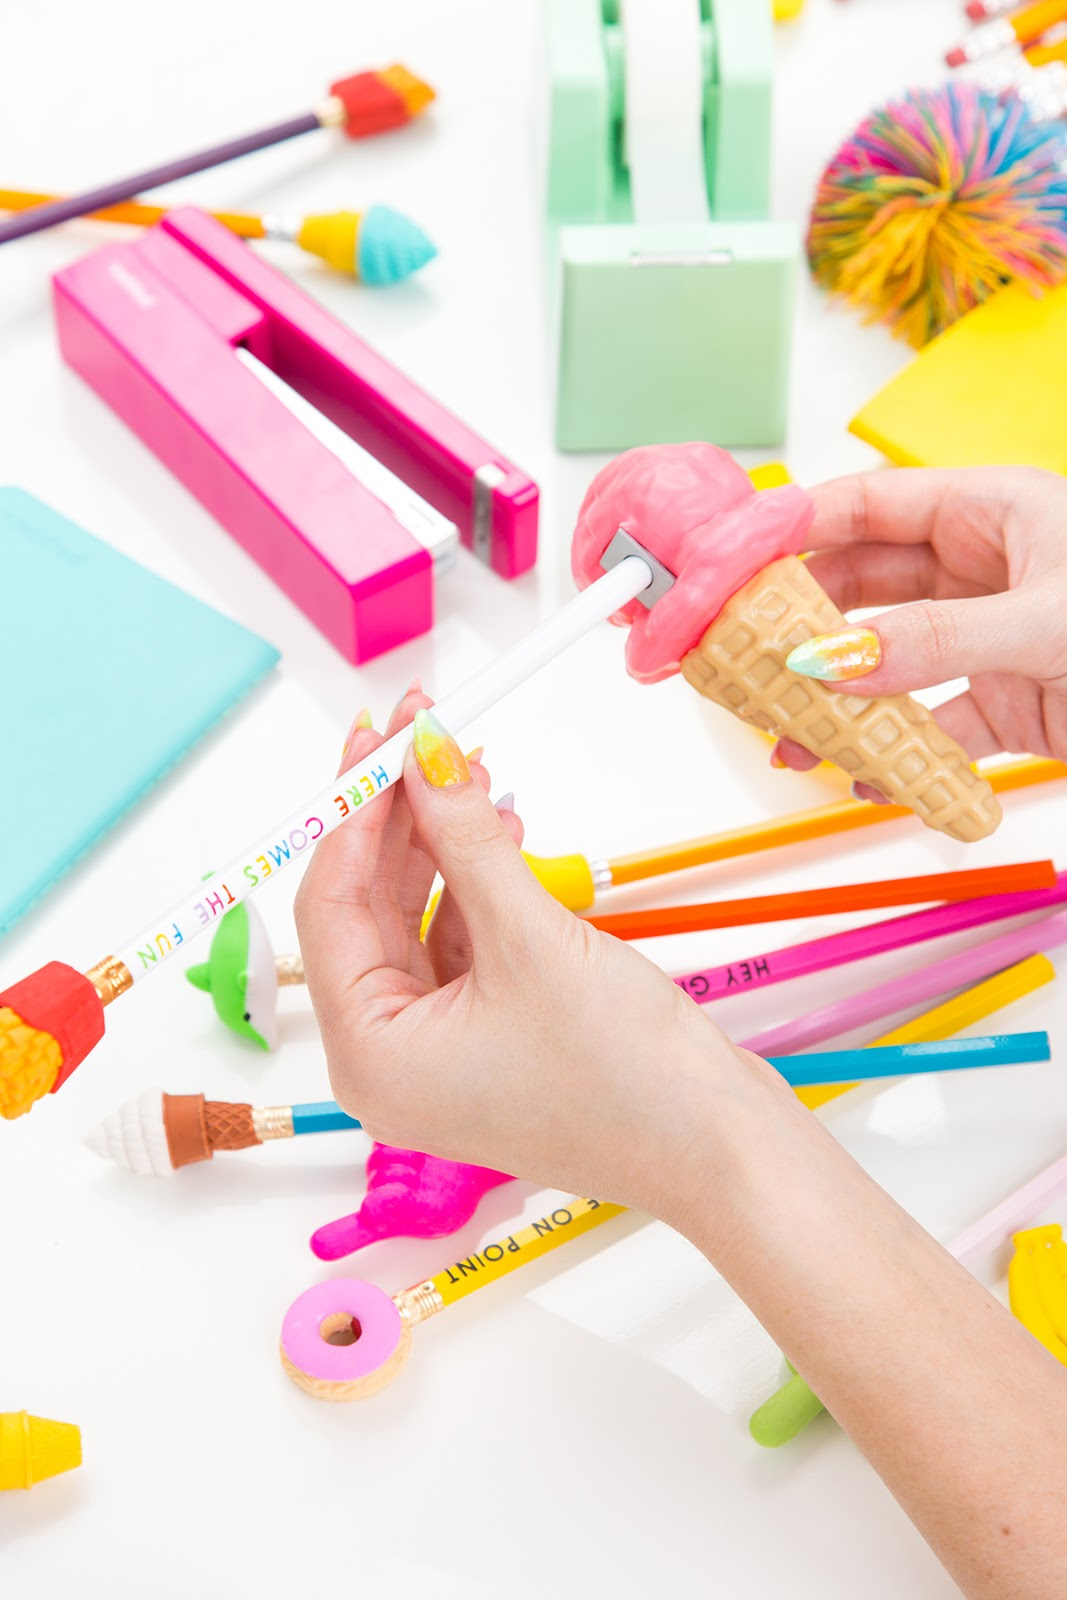 0dfdeca0d2 We've got a pencil holder, eraser toppers, typography pencils, and  sharpeners on the list of things to make, and you better believe that  they're all full of ...